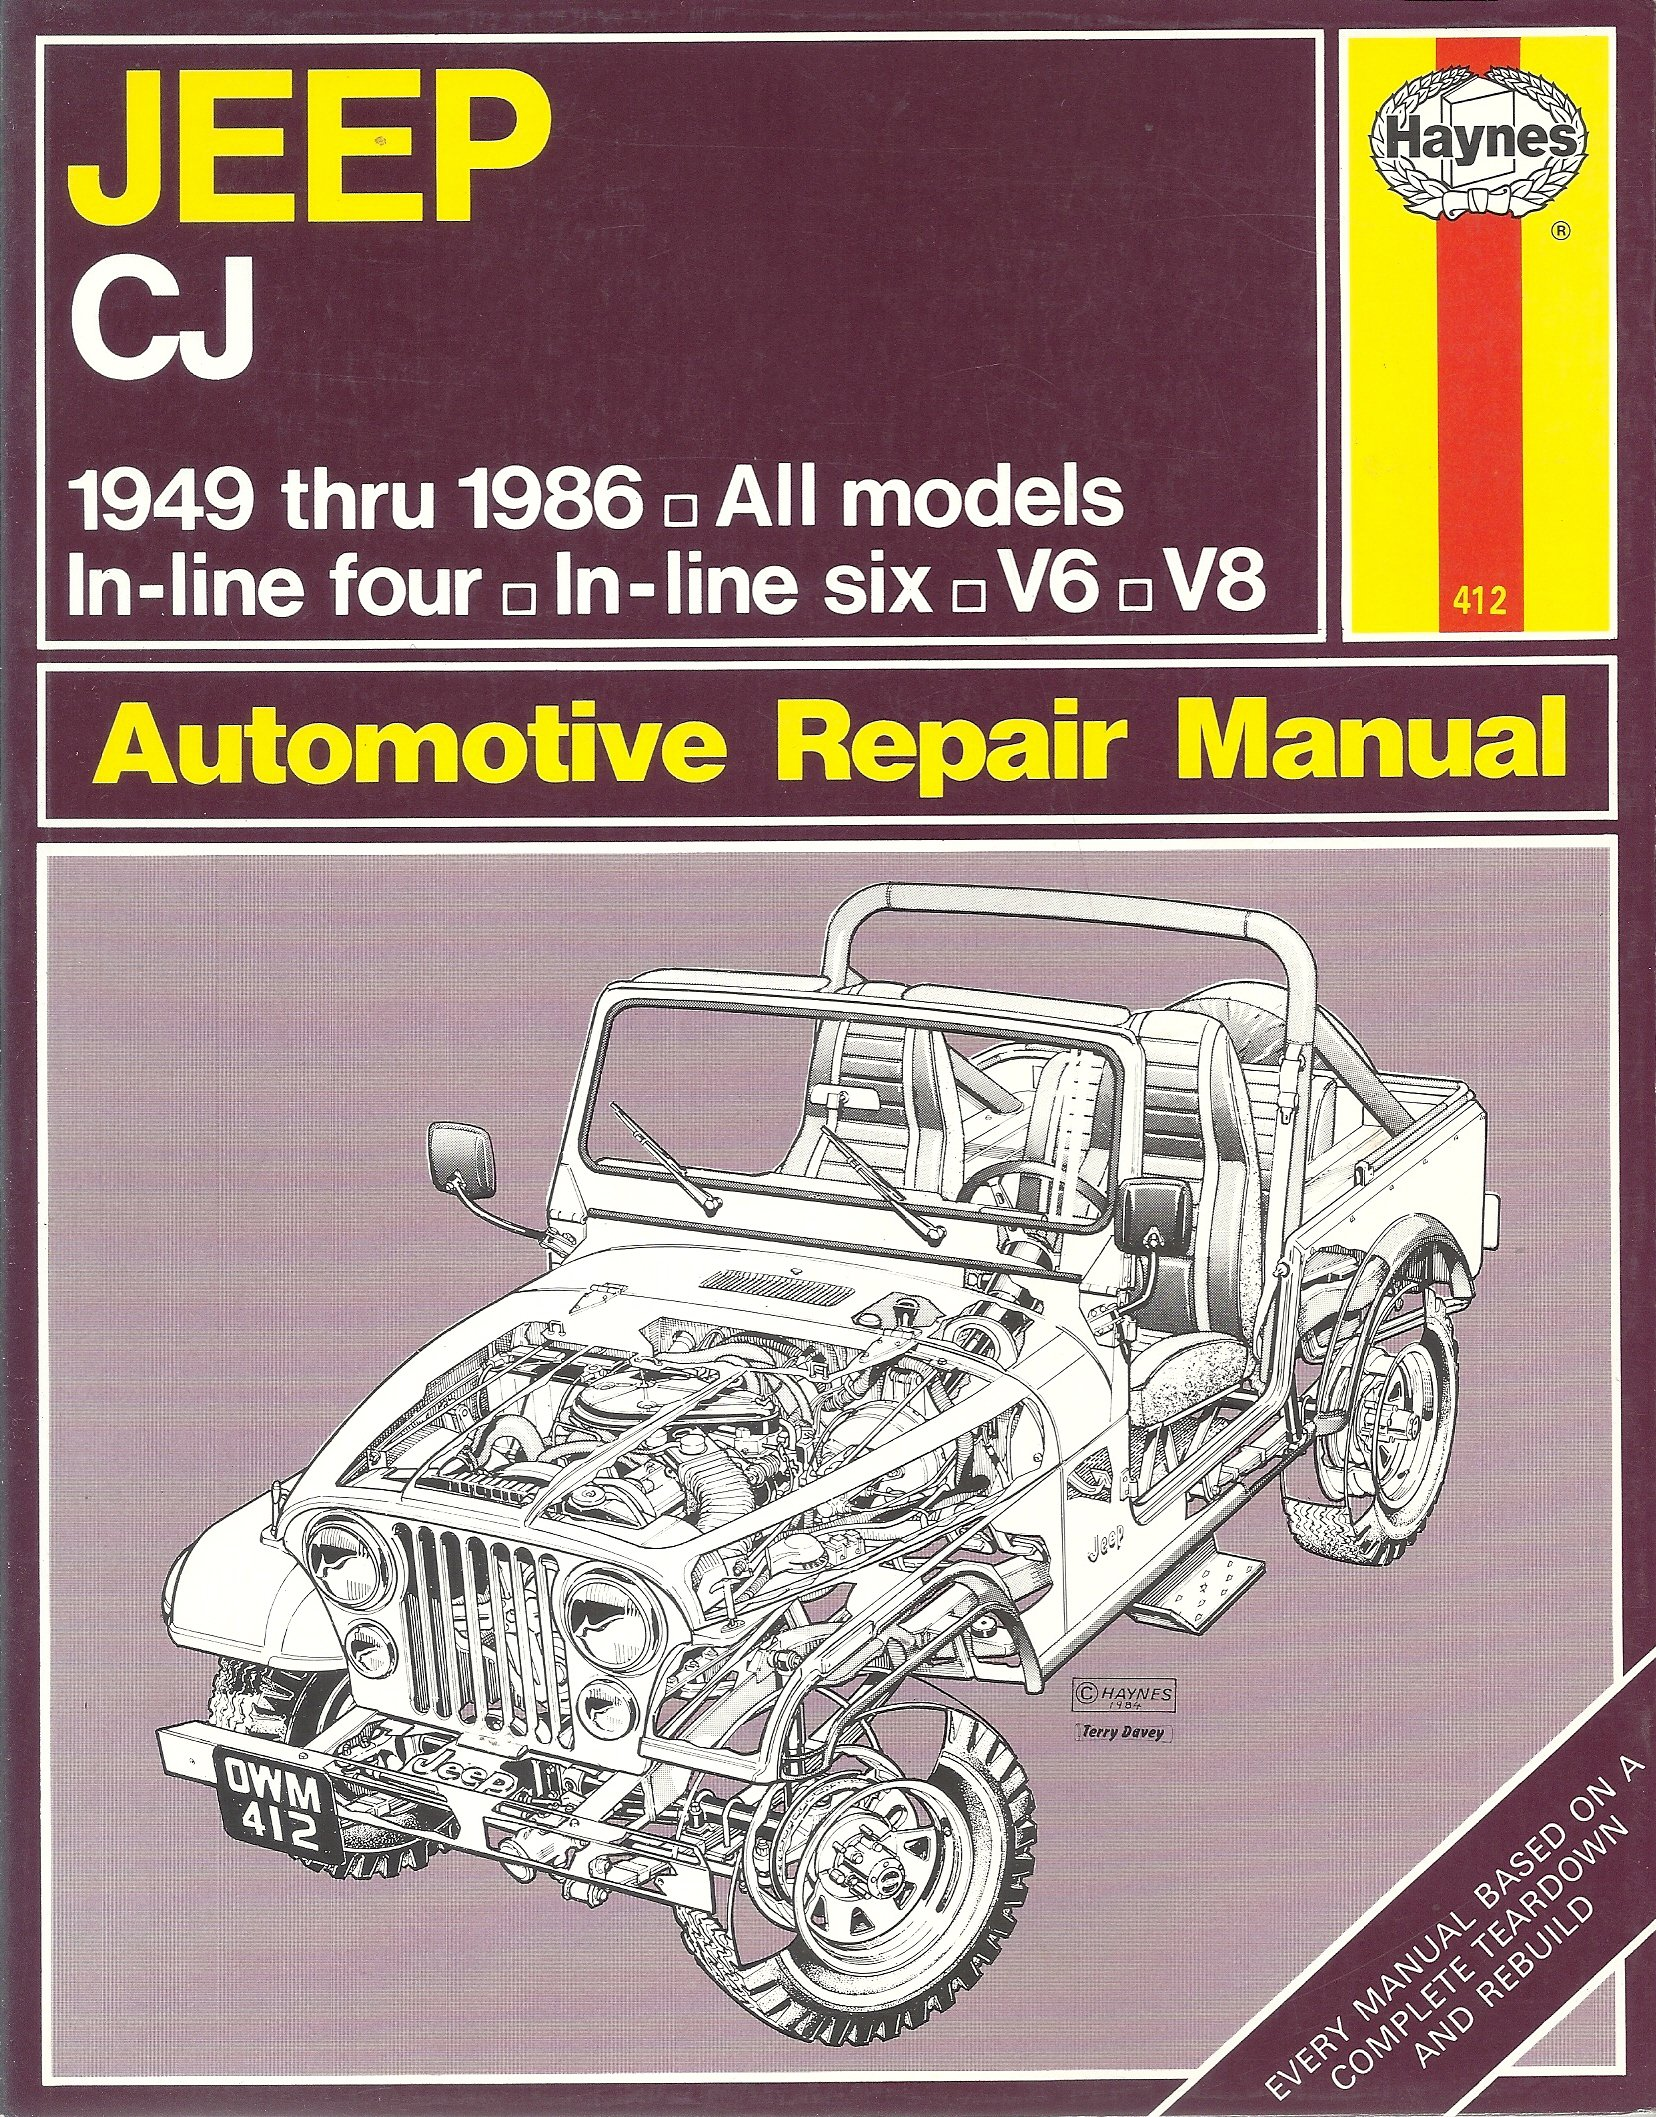 jeep cj automotive repair manual 1949 1986 larry warrens john rh amazon com 1986 Jeep Wrangler Jeep CJ7 Original Colors